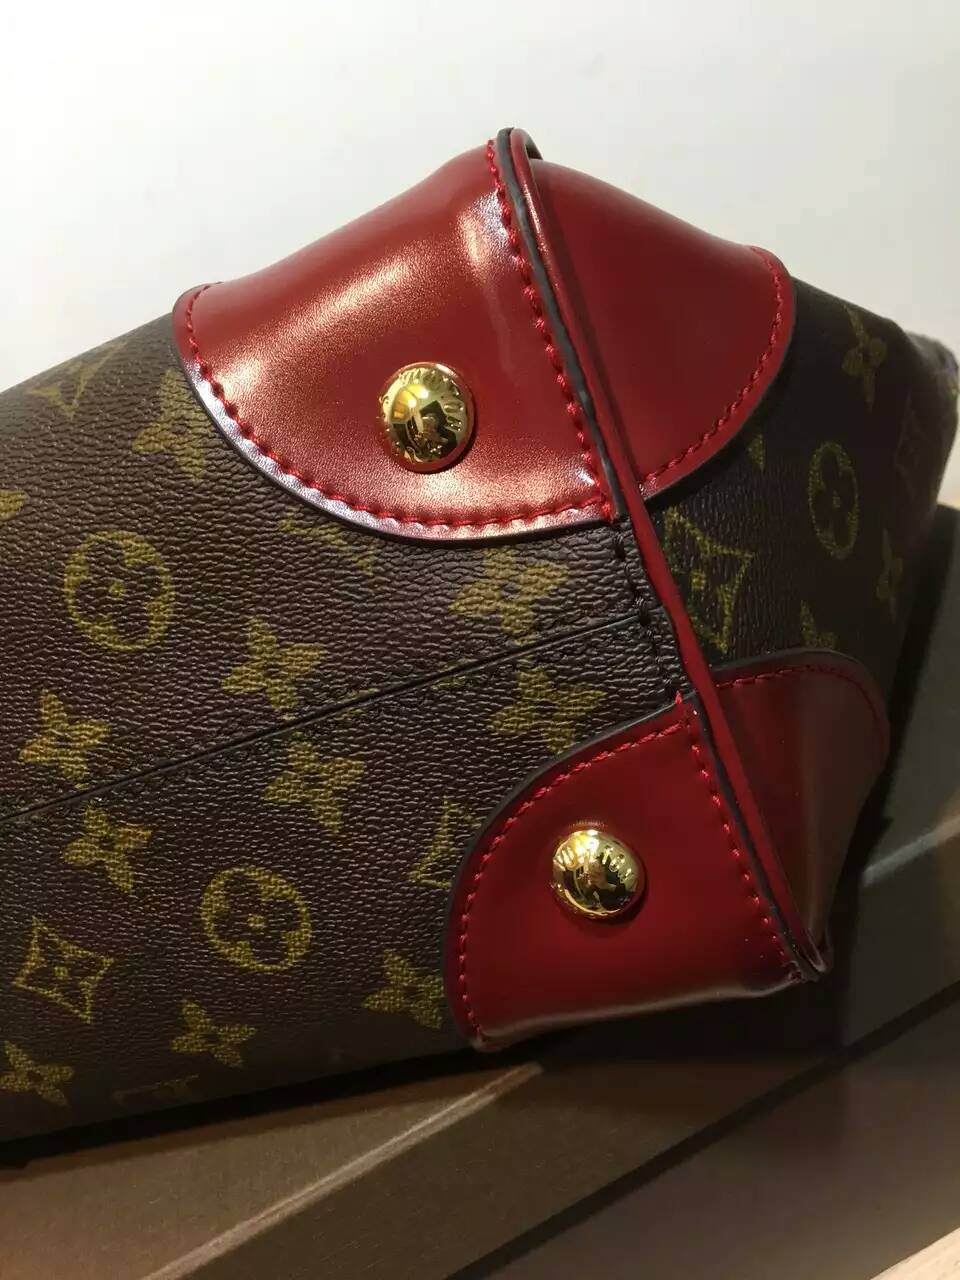 fashion sac louis vuitton solde m41538 w37h24d14